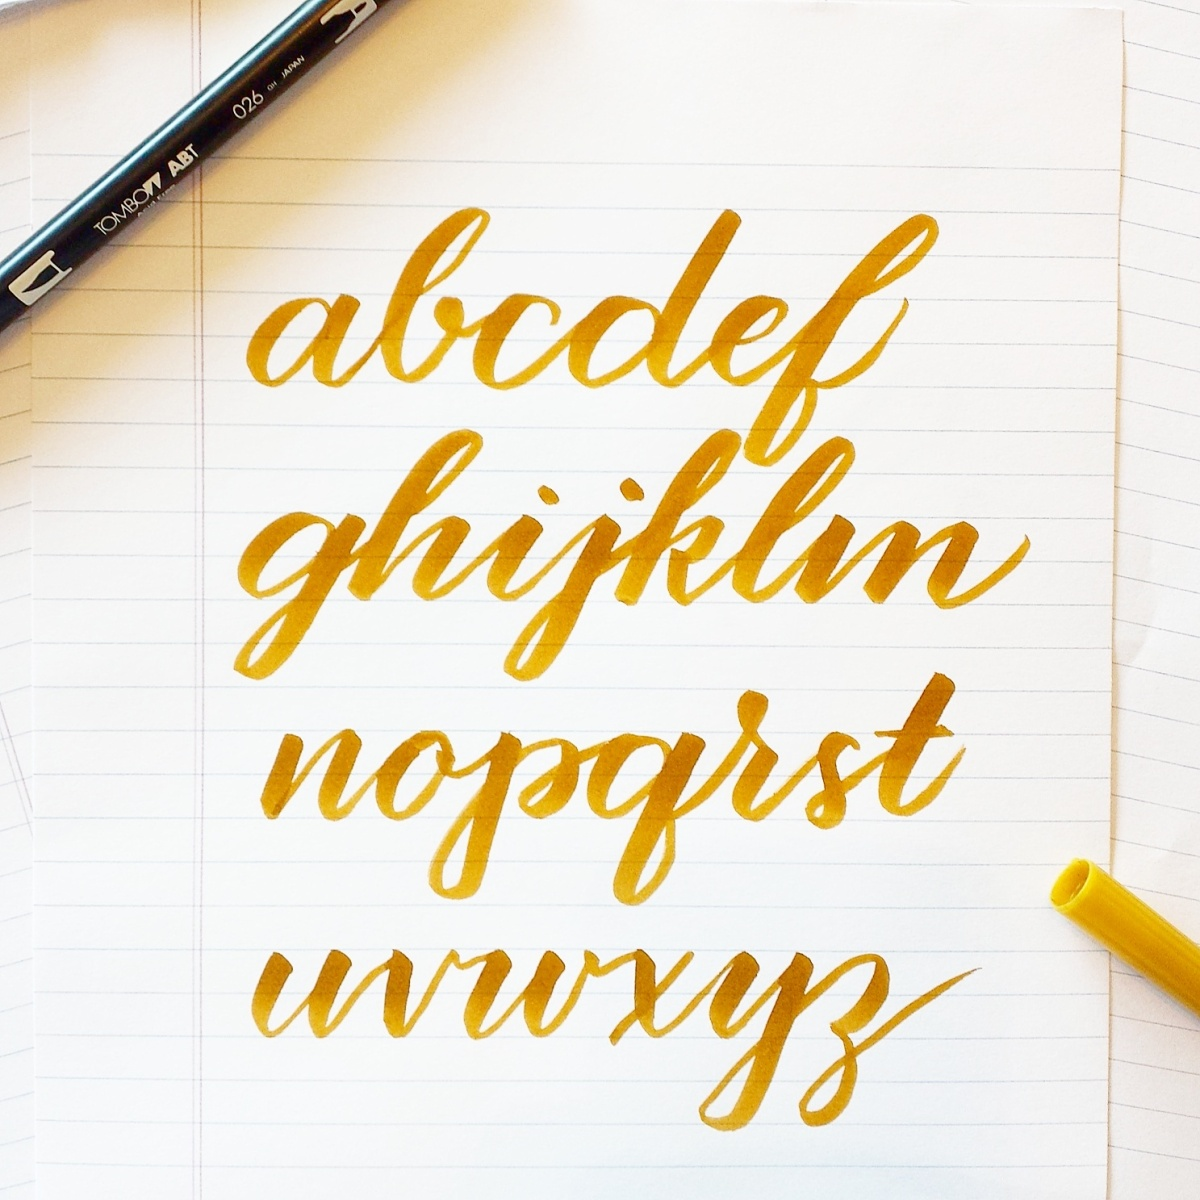 3 ways to improve your brush calligraphy – pieces calligraphy